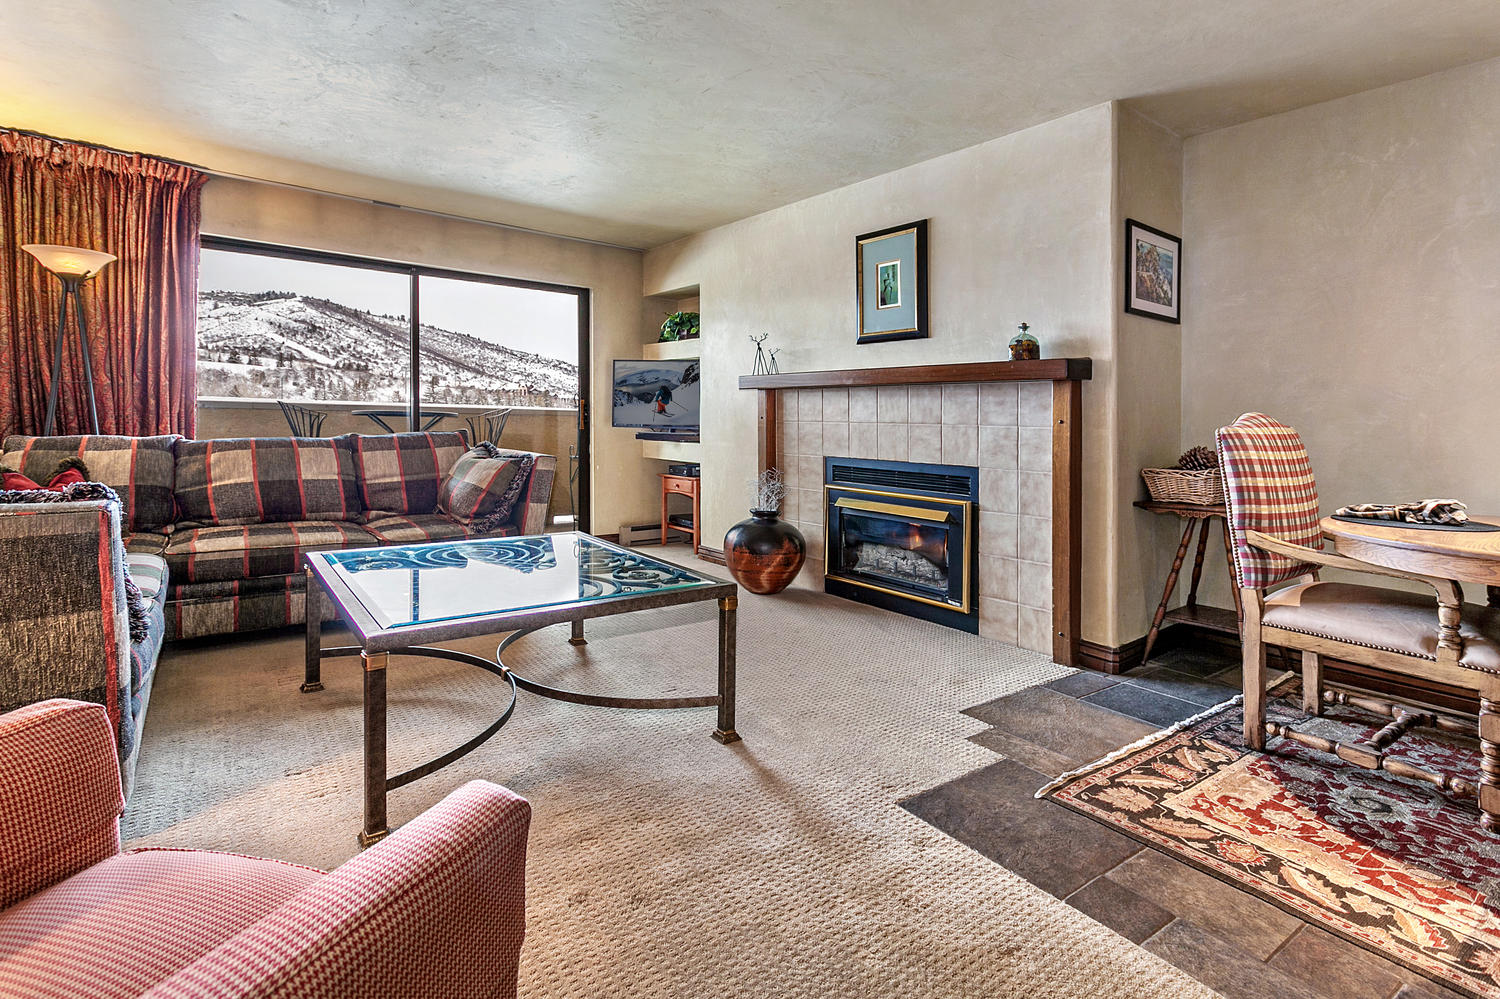 Condominium for Sale at The Seasons at Avon #324 137 Benchmark Rd #324 Avon, Colorado, 81620 United States